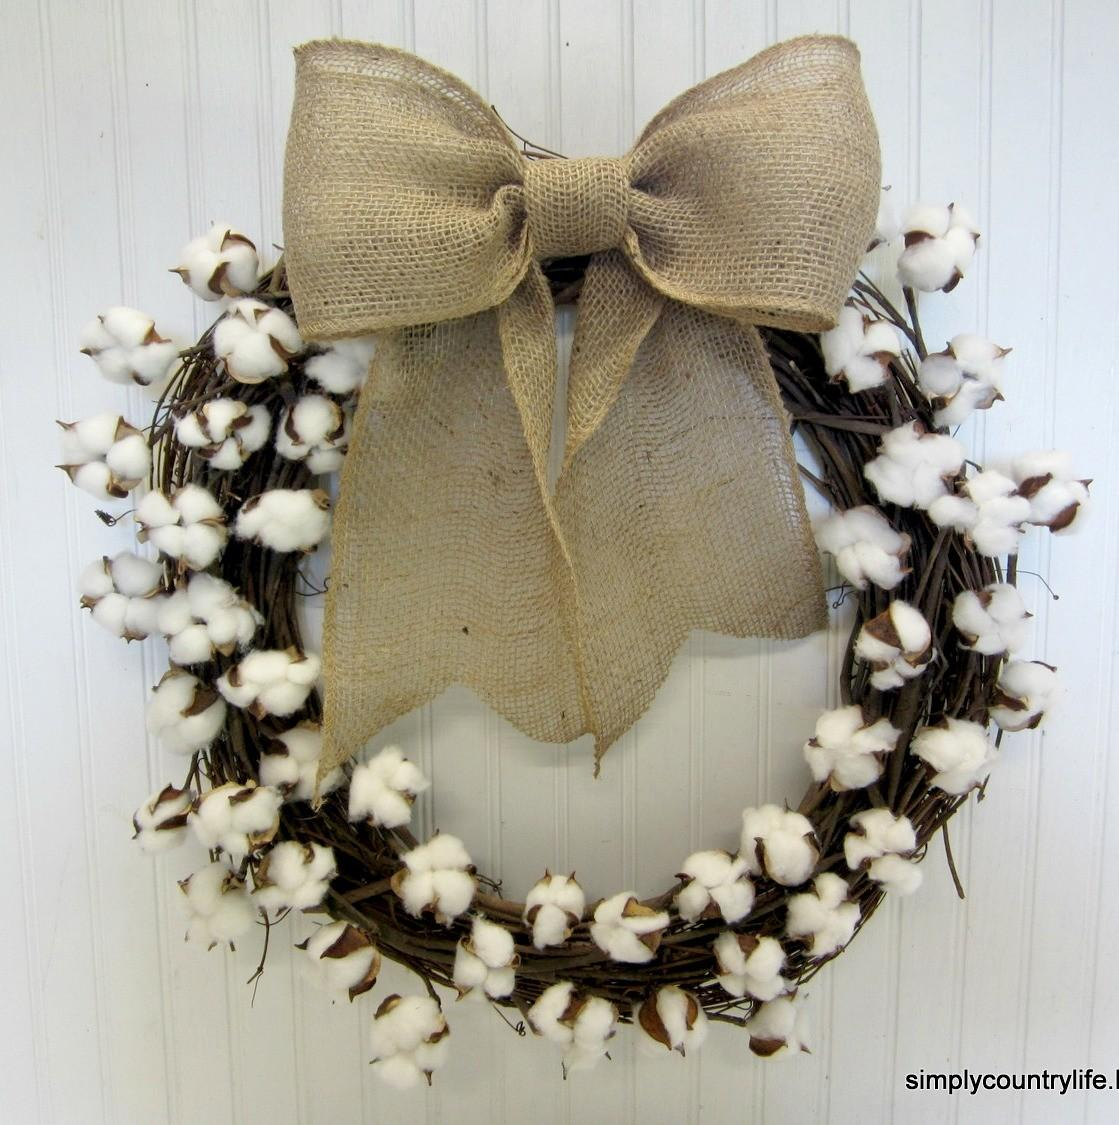 Make Your Own Cotton Boll Branch Wreath Hometalk